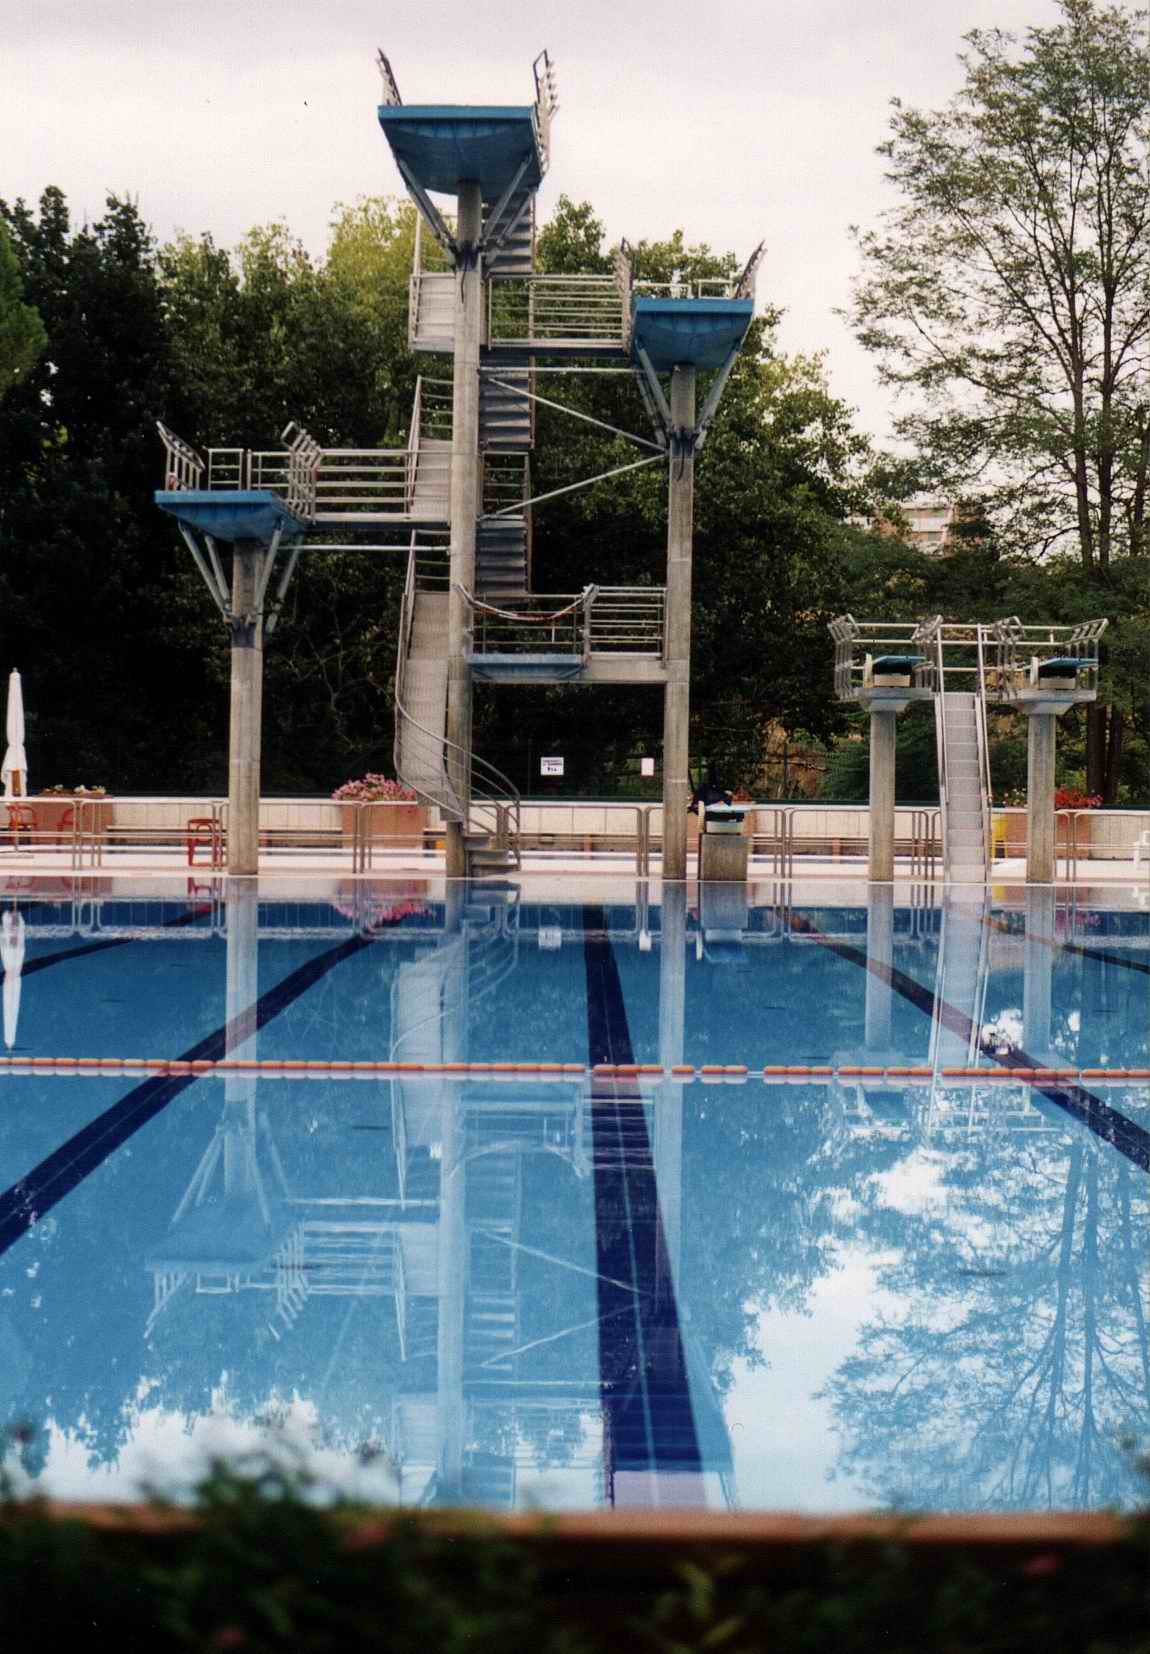 File piscina olimpia jpg wikimedia commons for Piscina olimpia siena